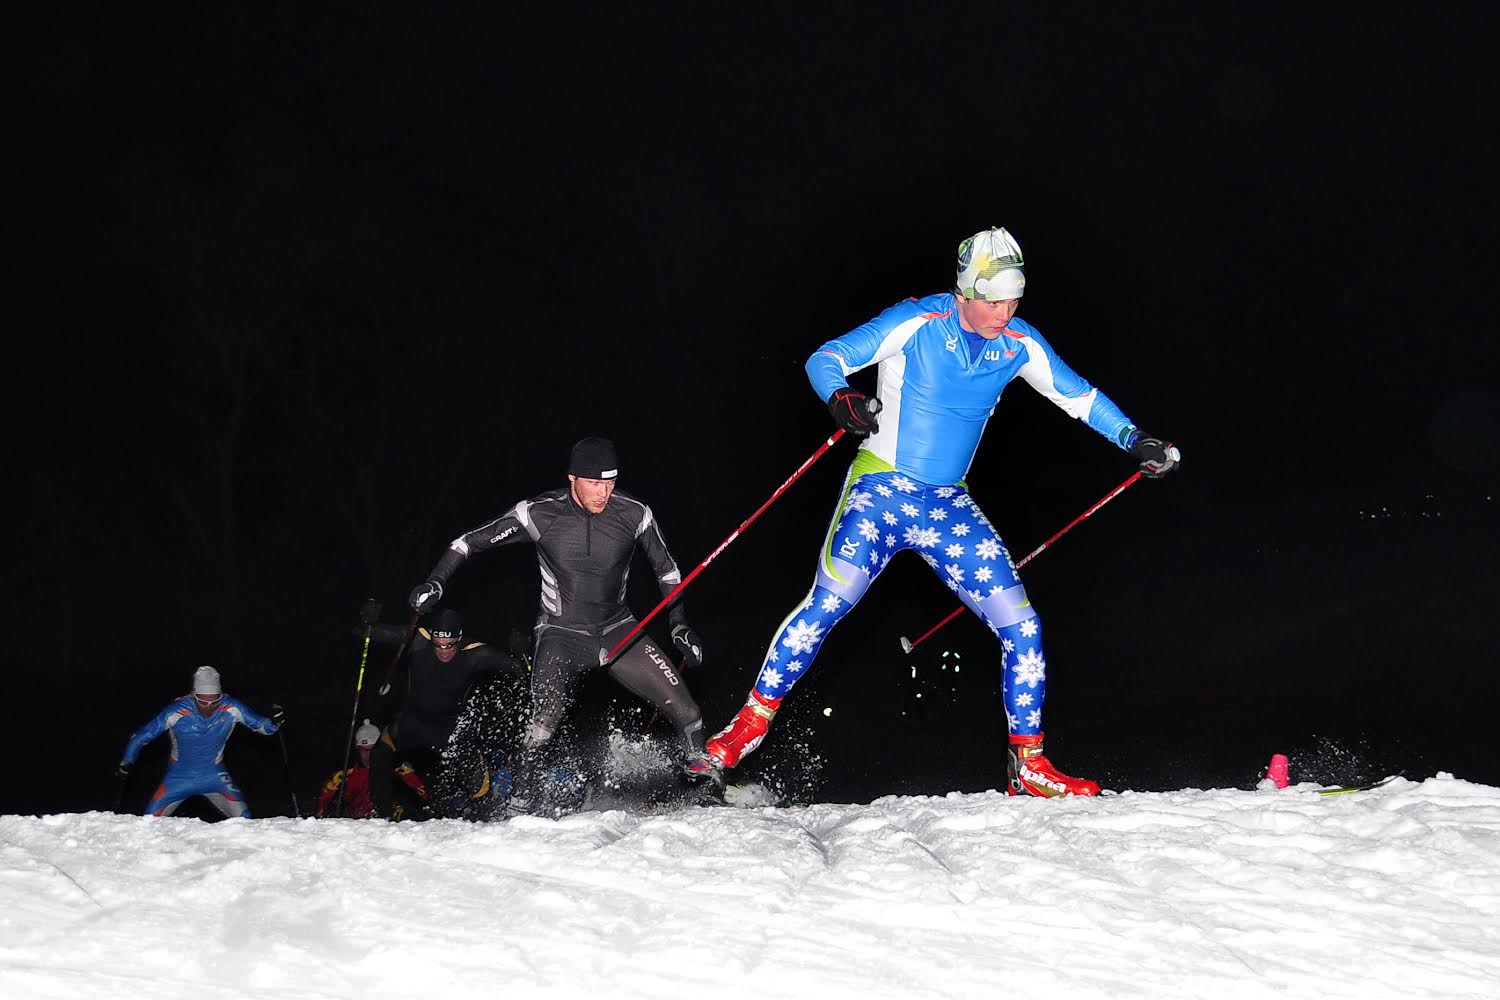 Hamish McEwen and Ian Situation train on the illuminated Weston Ski Track in Weston, Mass. (Photograph: Jamie Doucett)